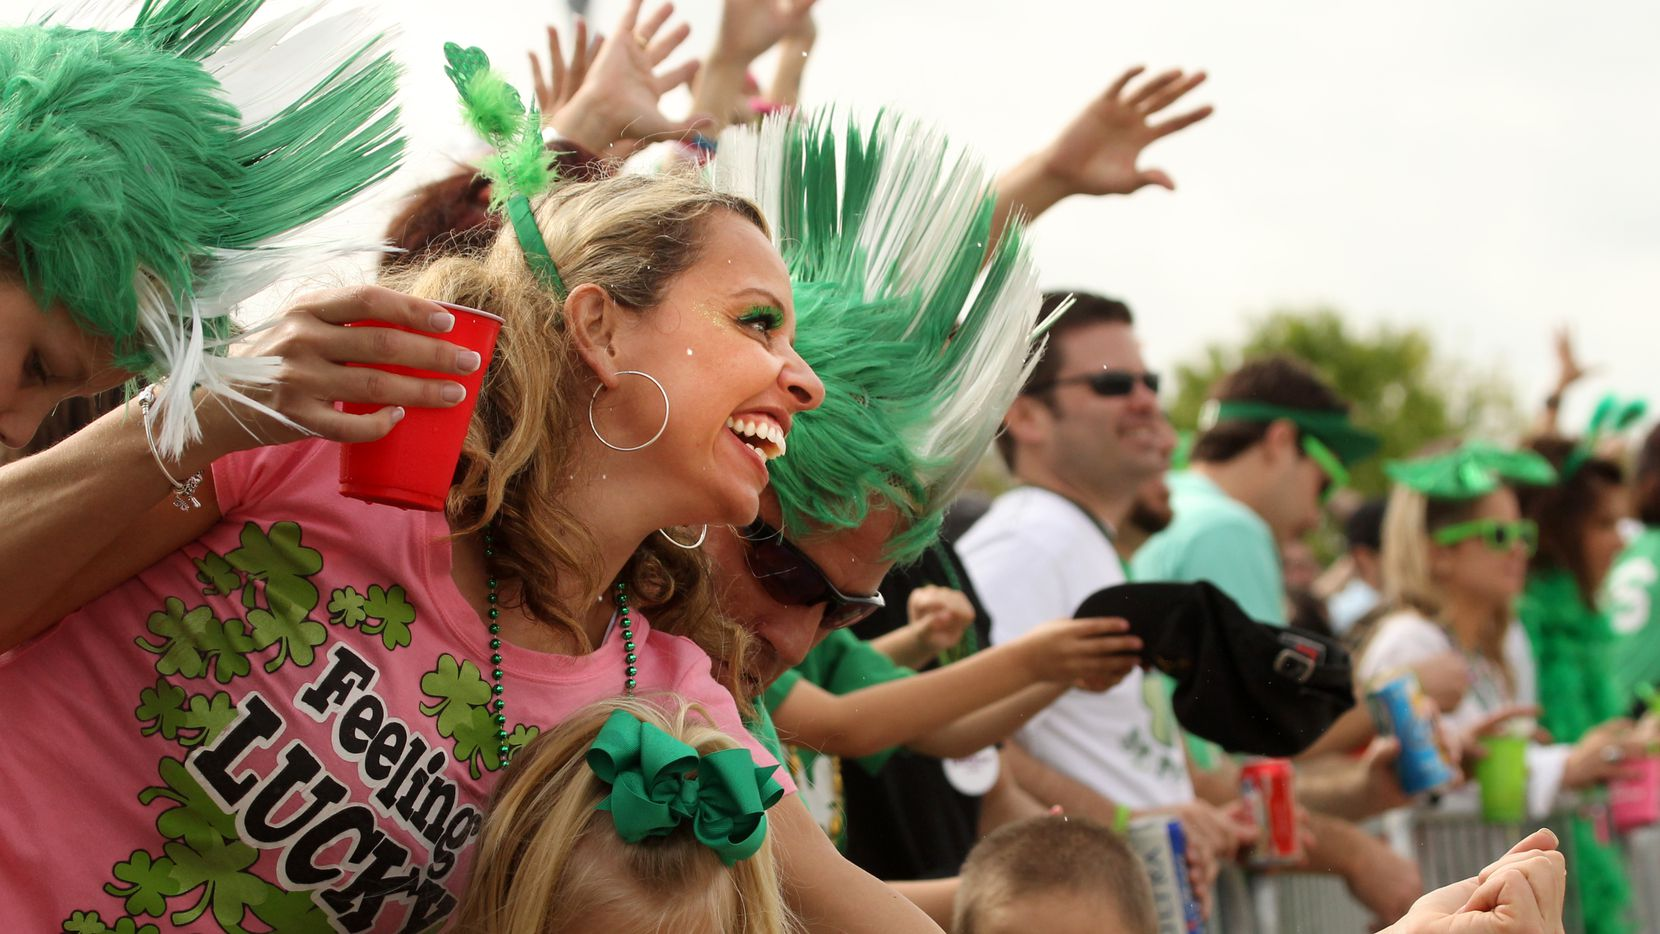 Kolleen Kiburz of Dallas tries to catch beads during St. Patrick's Day Parade on Greenville Avenue.